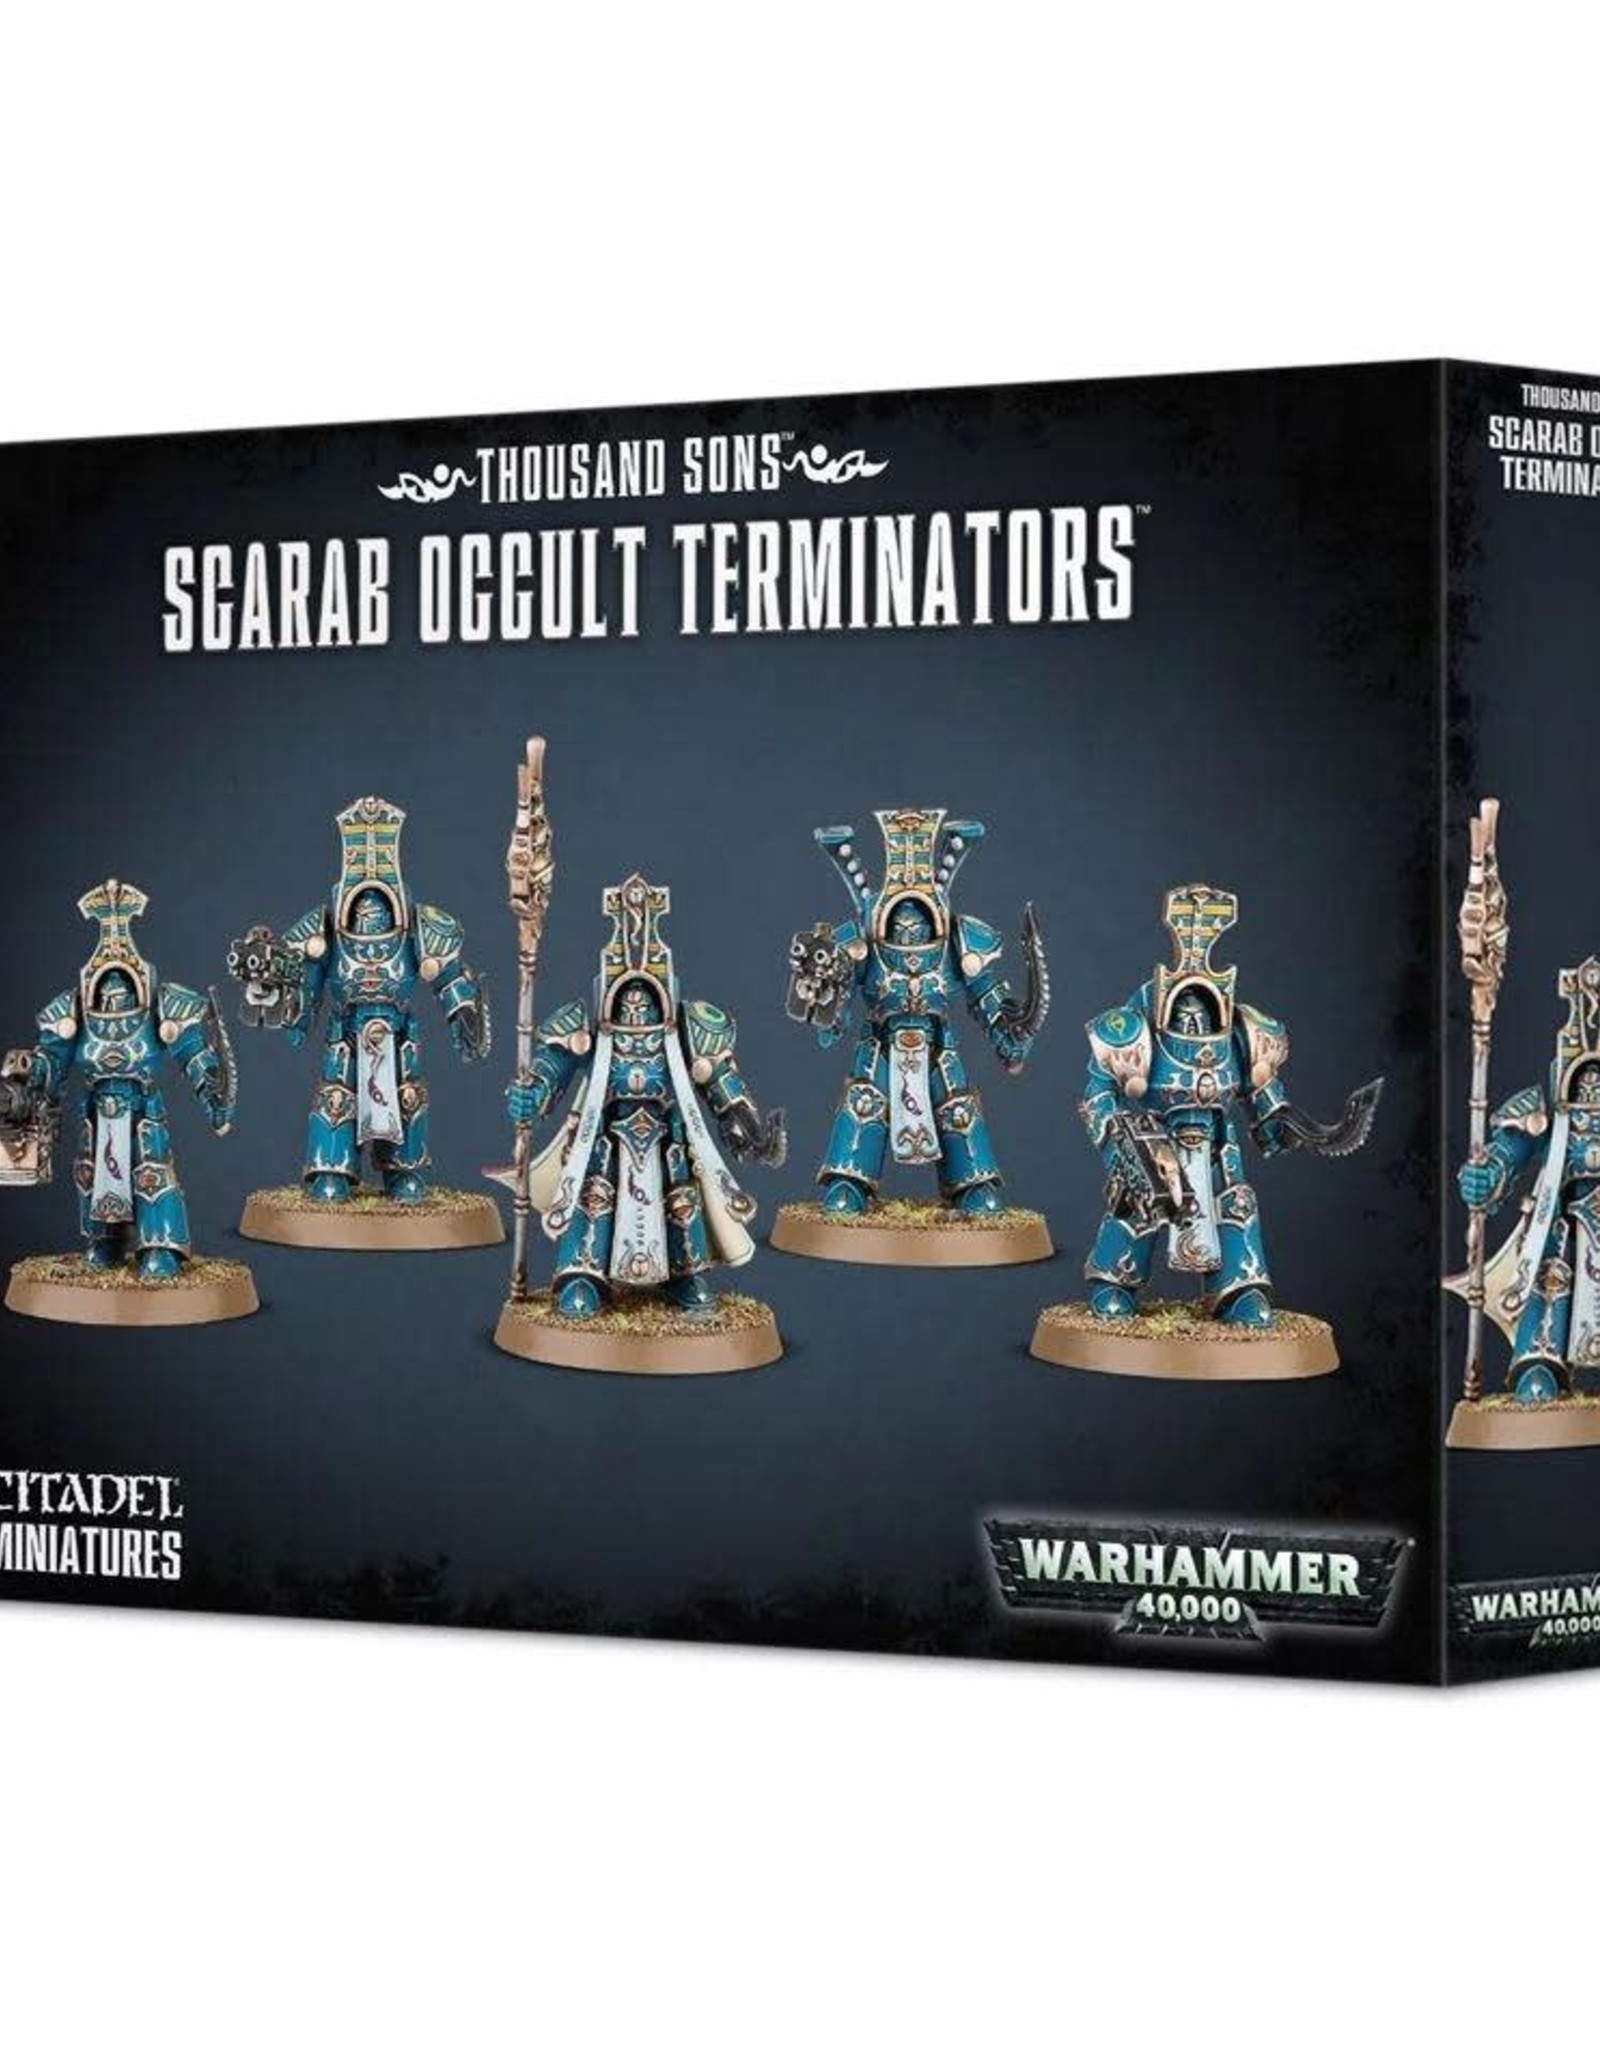 Warhammer 40K Thousand Sons Scarab Occult Terminators